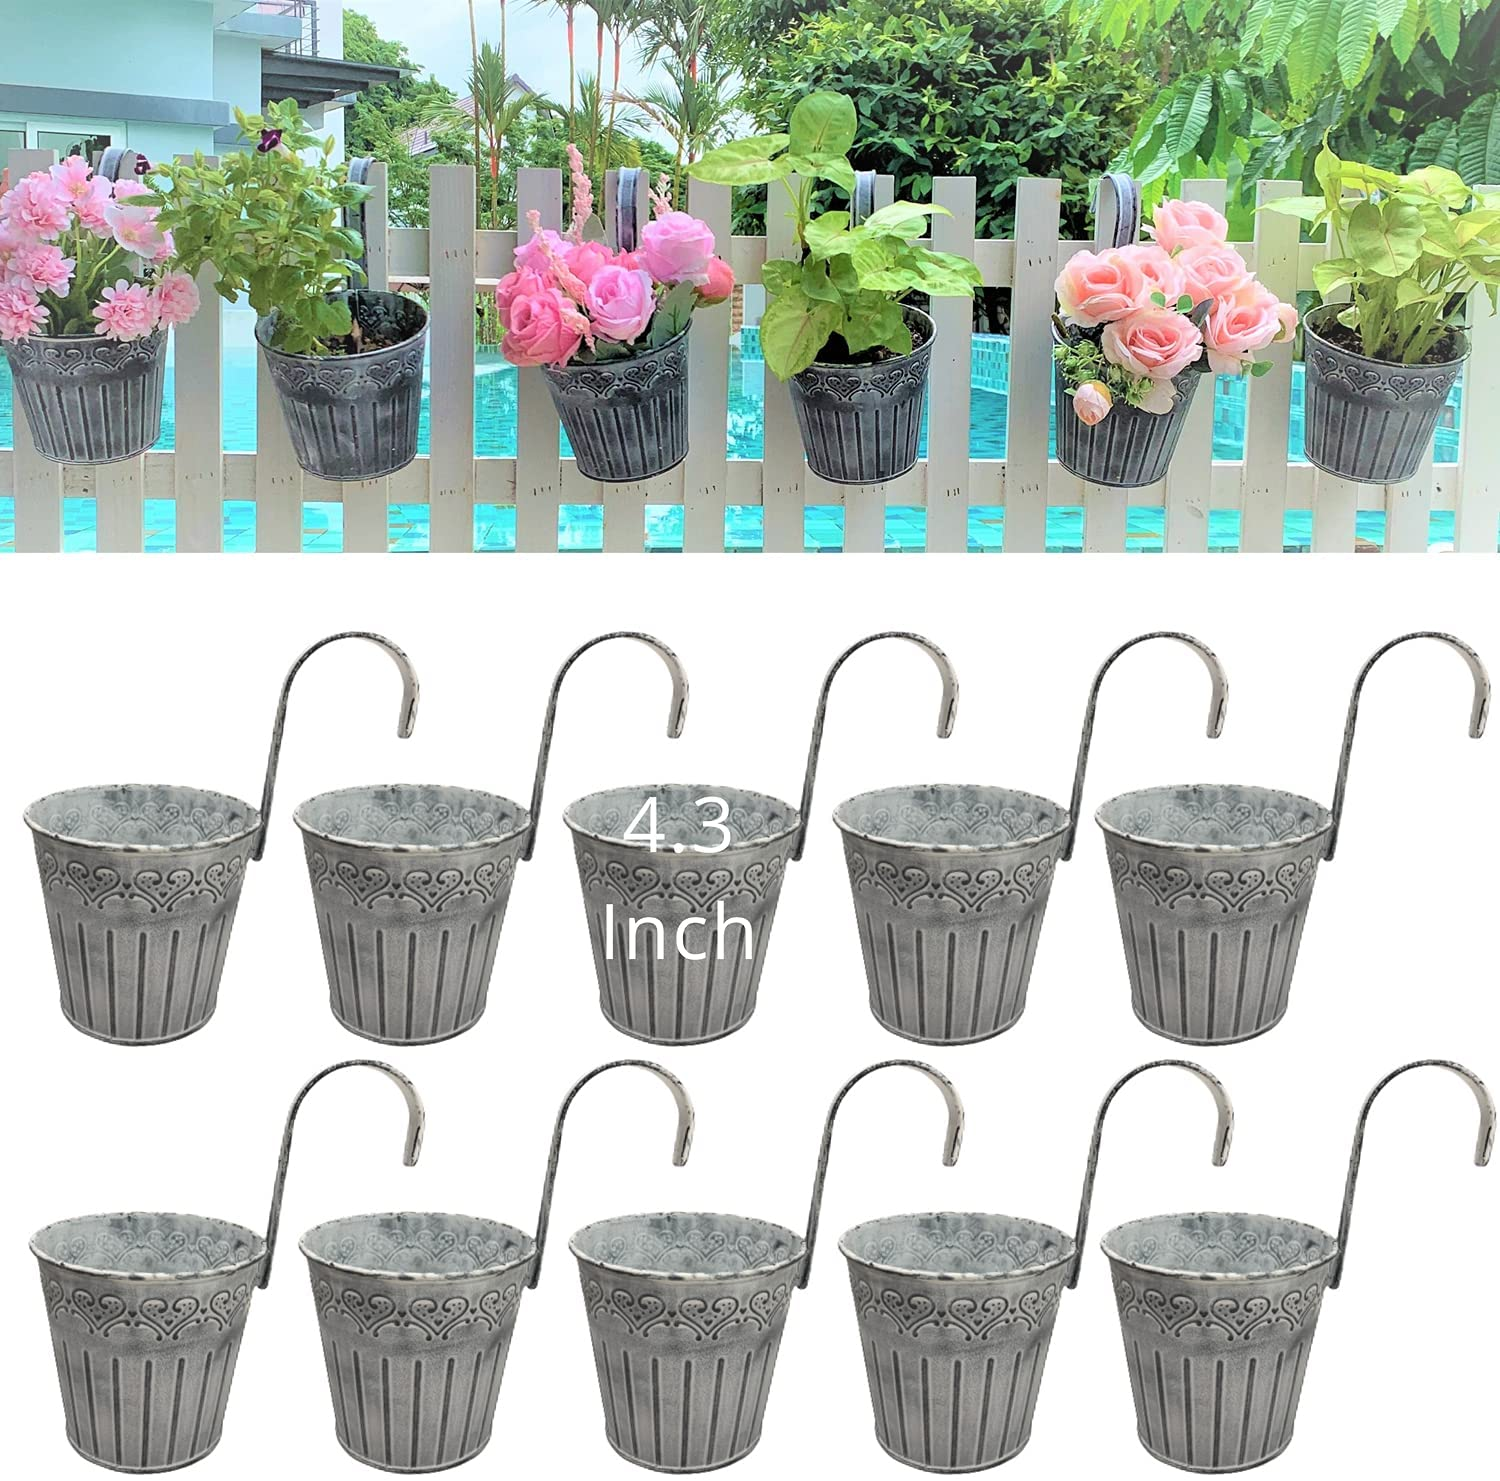 Hanging Flower Pots - 10 Pack, 4.3 Inch Balcony Planters Railing Hanging, Small Galvanized Metal Fence Planters for Outdoor Plants Farmhouse Garden Rustic Flower Succulent, Maceteros para Balcon